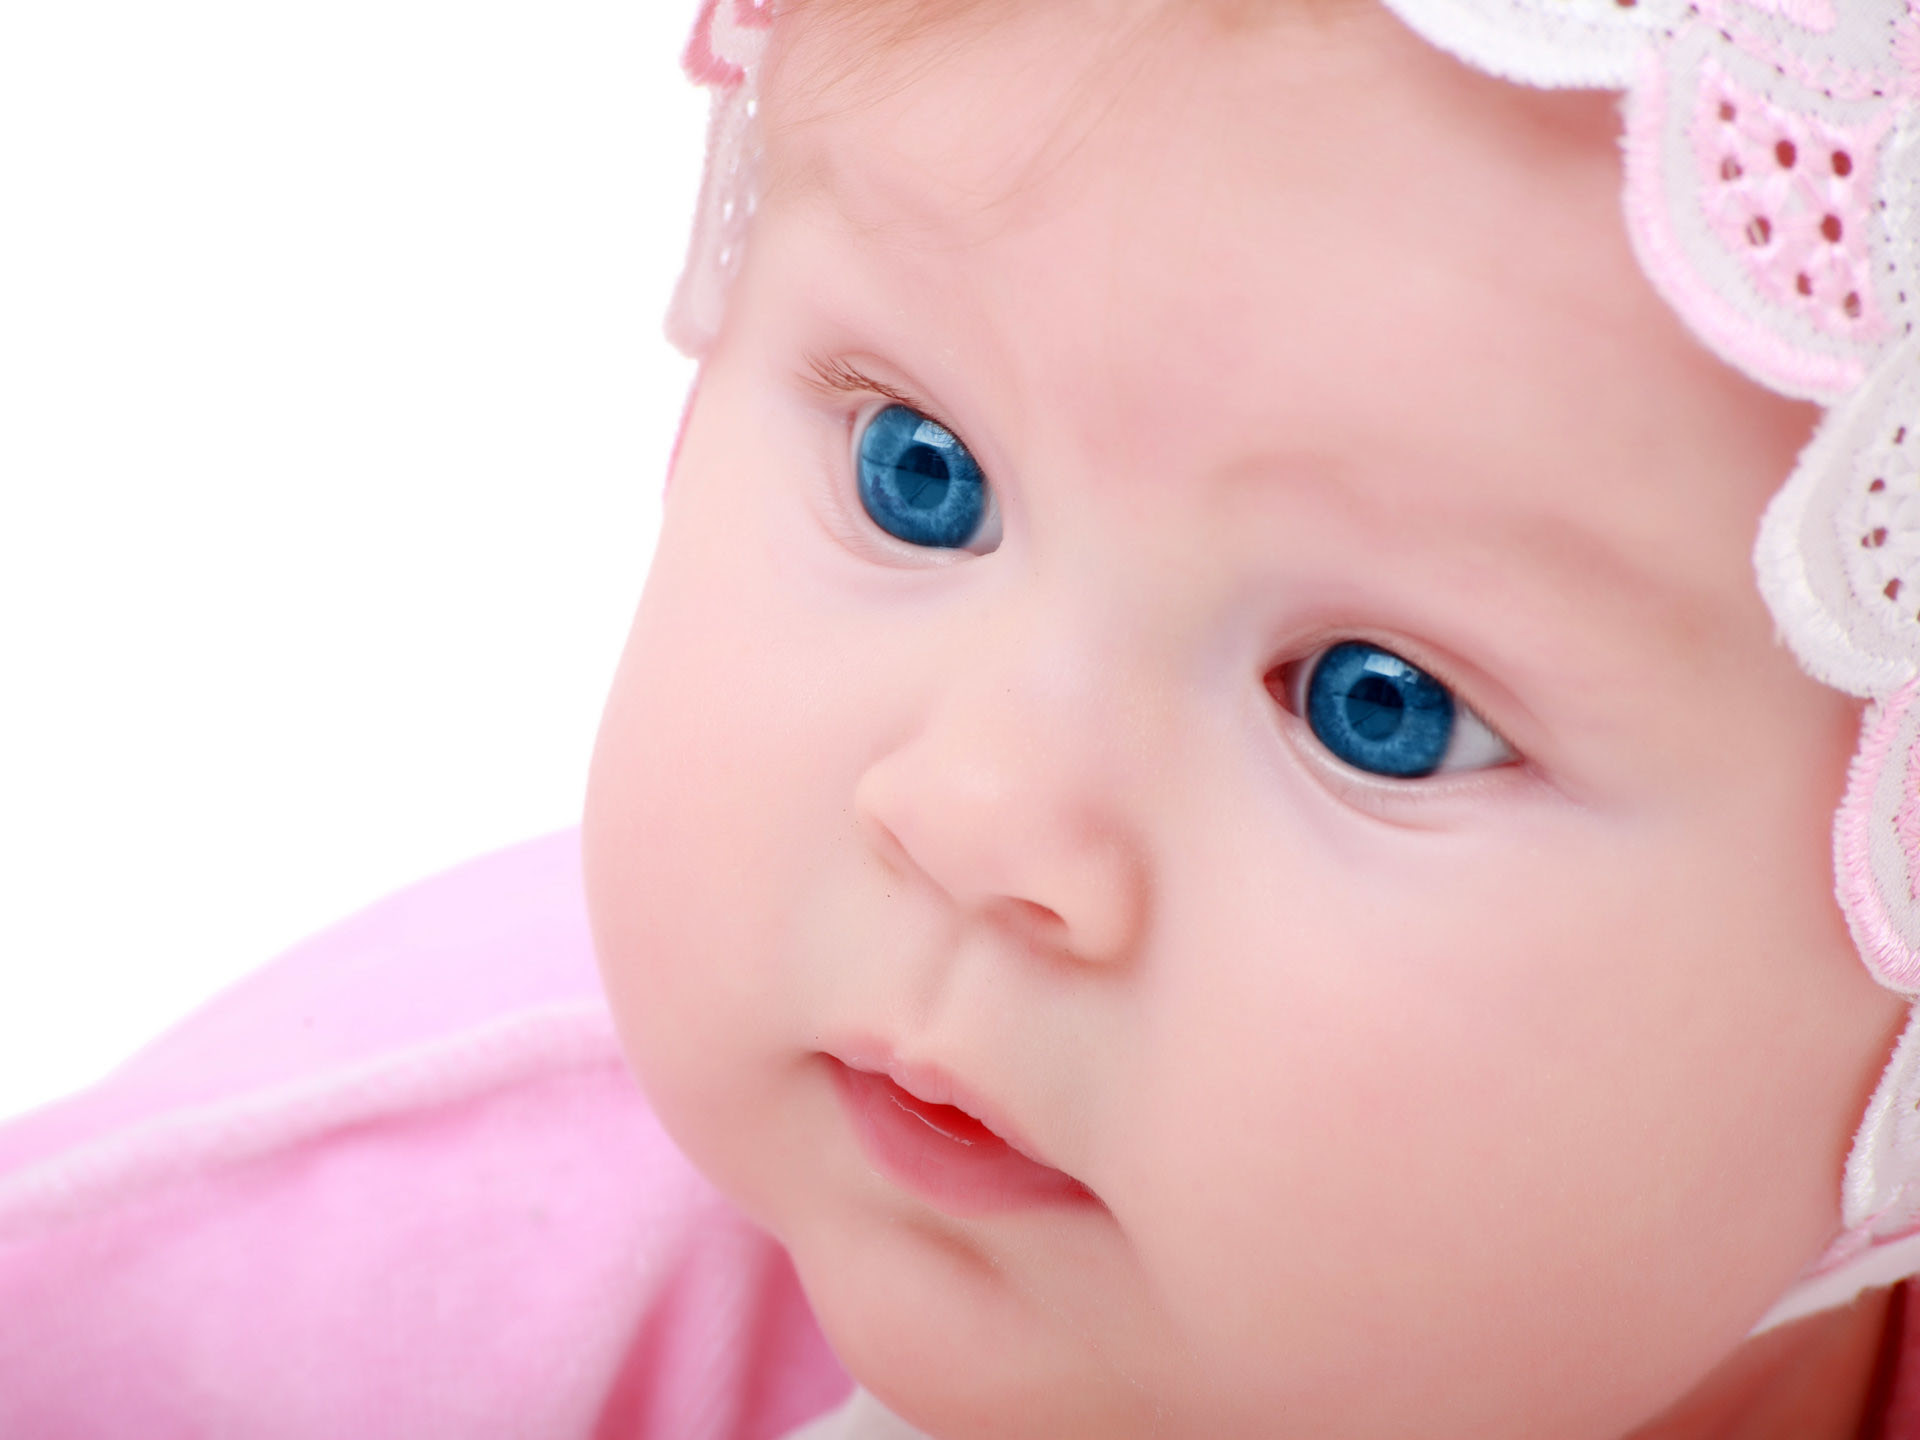 Cute Baby Pics Wallpapers 64 Images Images, Photos, Reviews